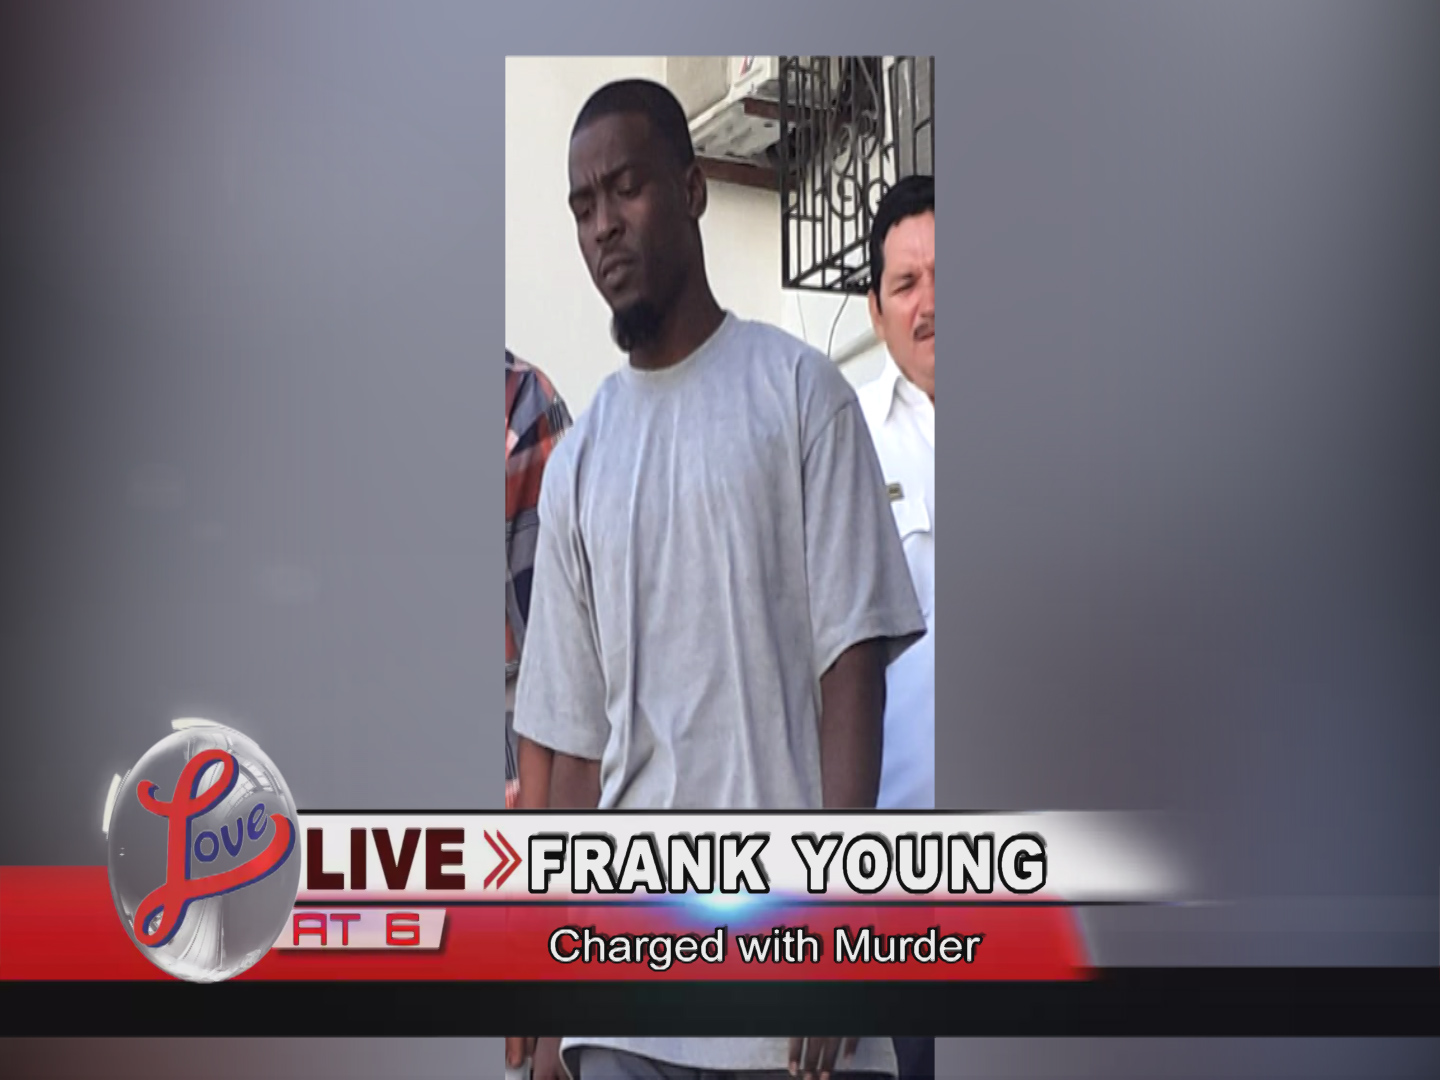 FRANK YOUNG VO